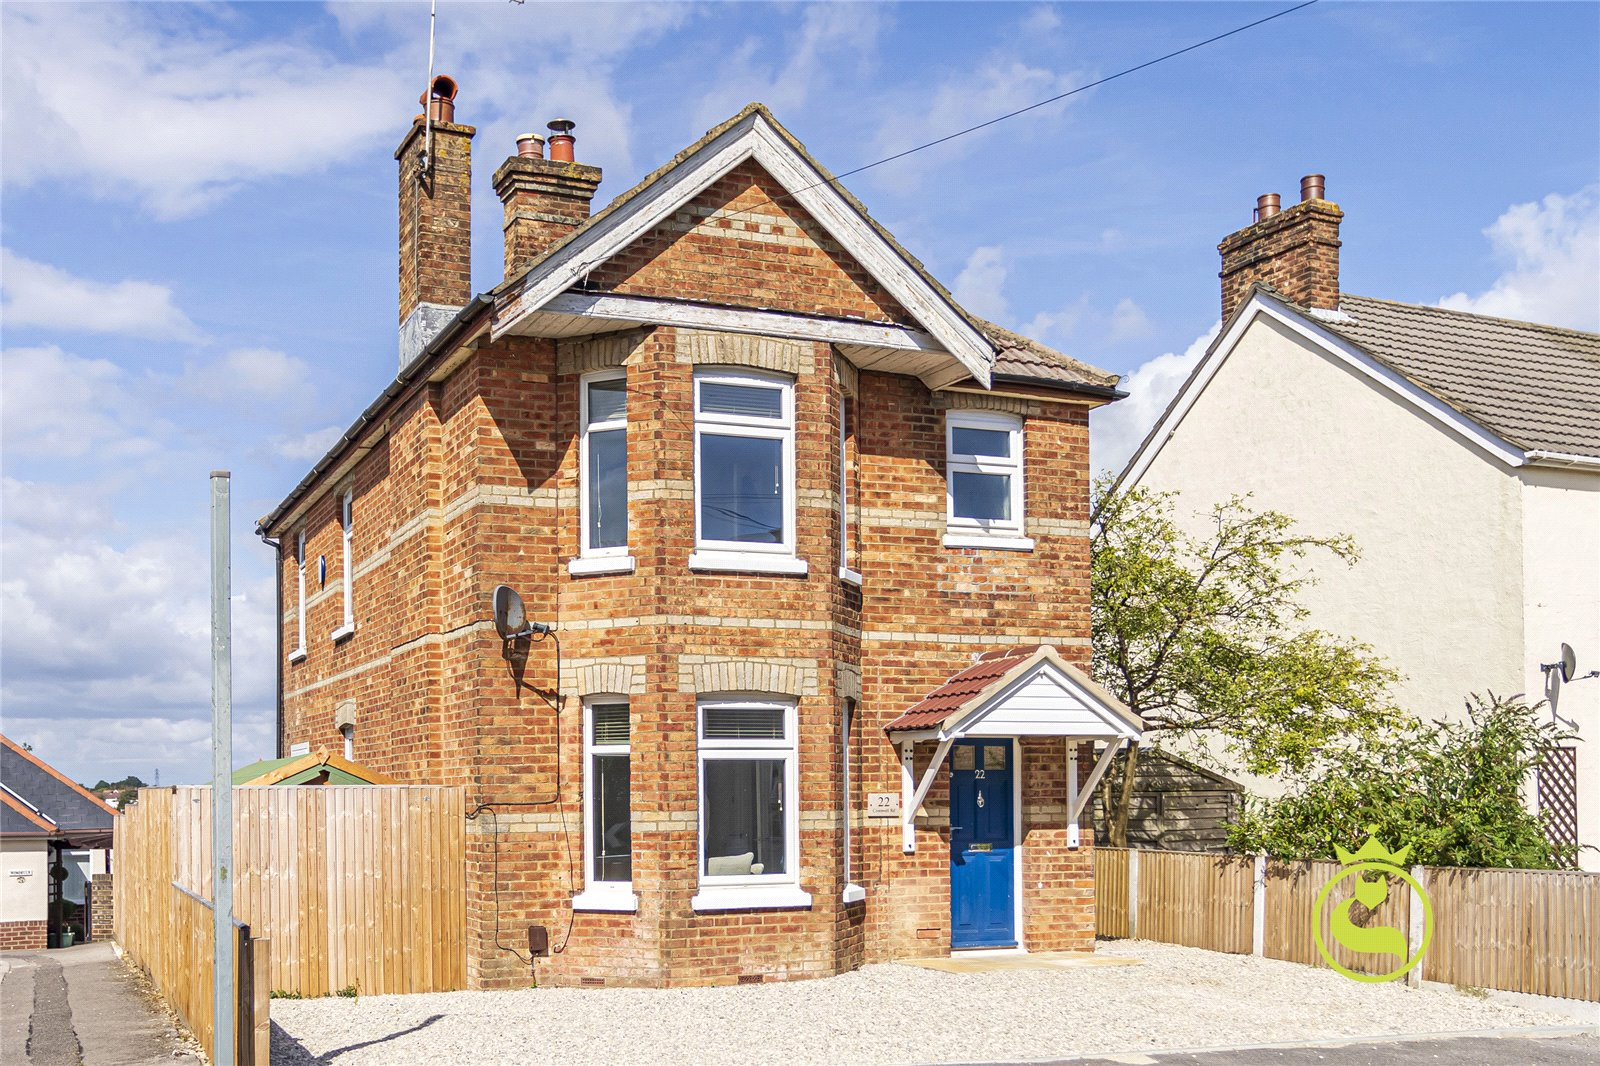 3 bed house for sale in Cromwell Road, Parkstone, BH12